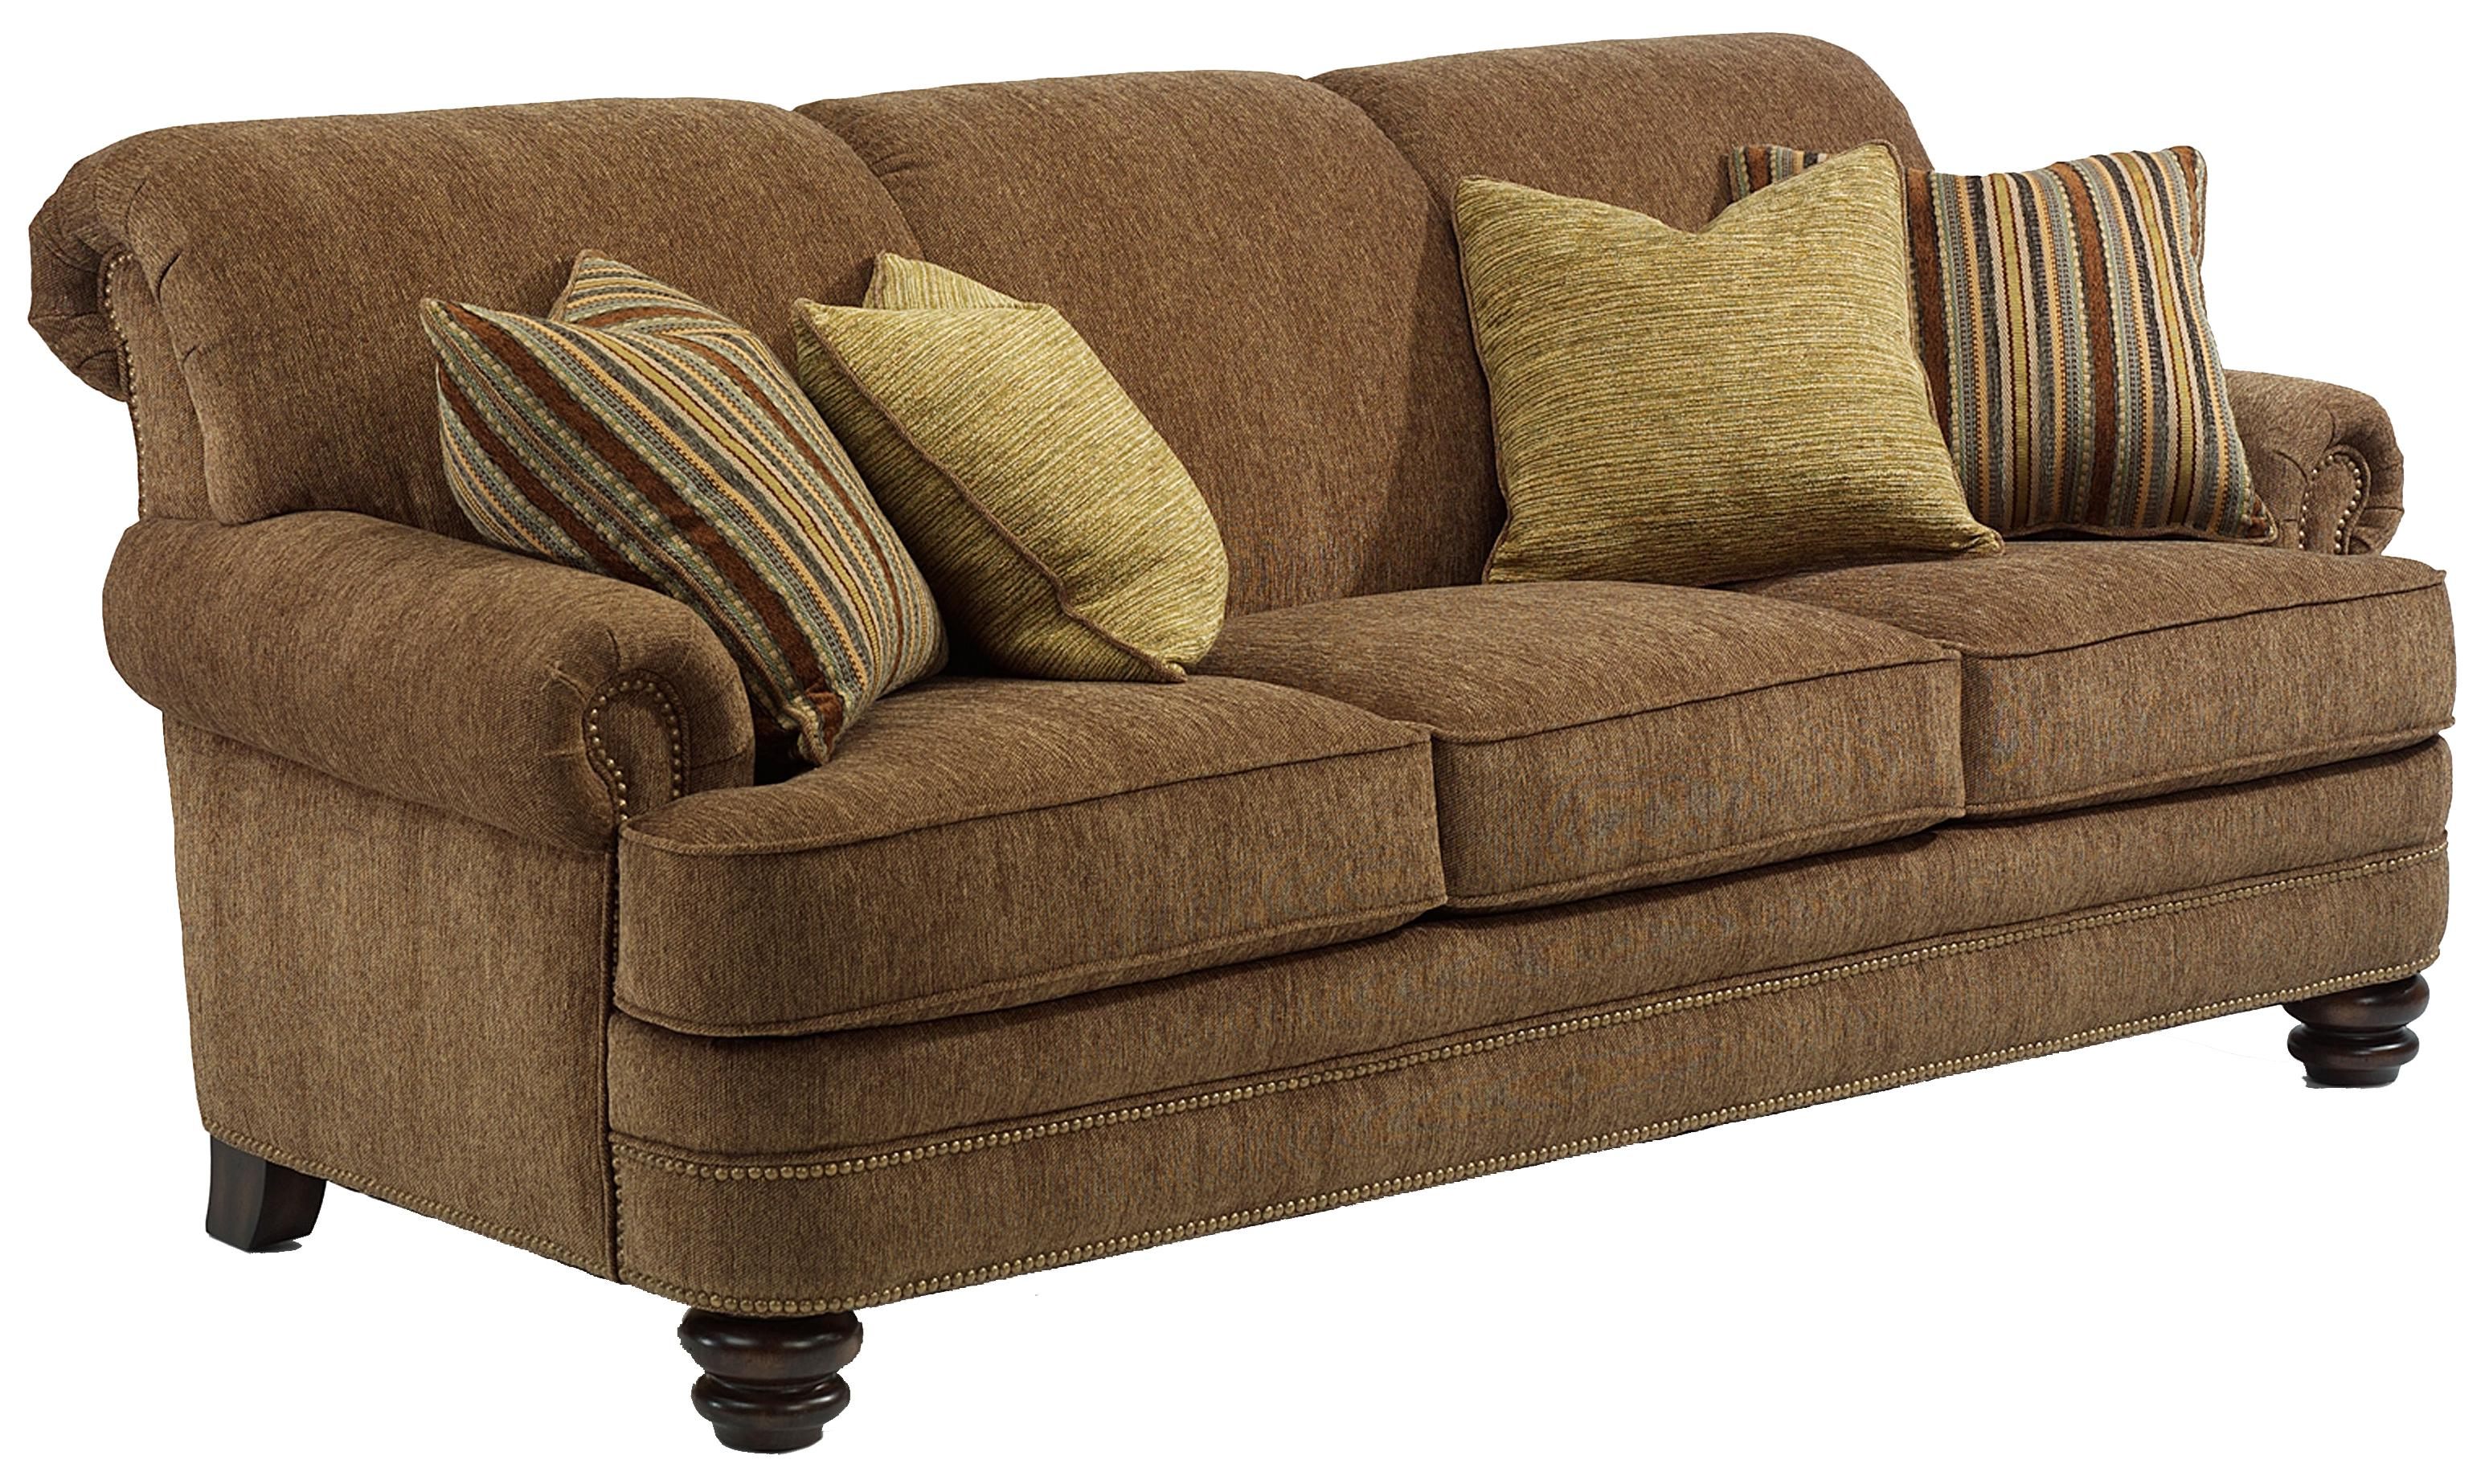 Flexsteel bay bridge traditional rolled back sofa olinde for Traditional sofas and loveseats